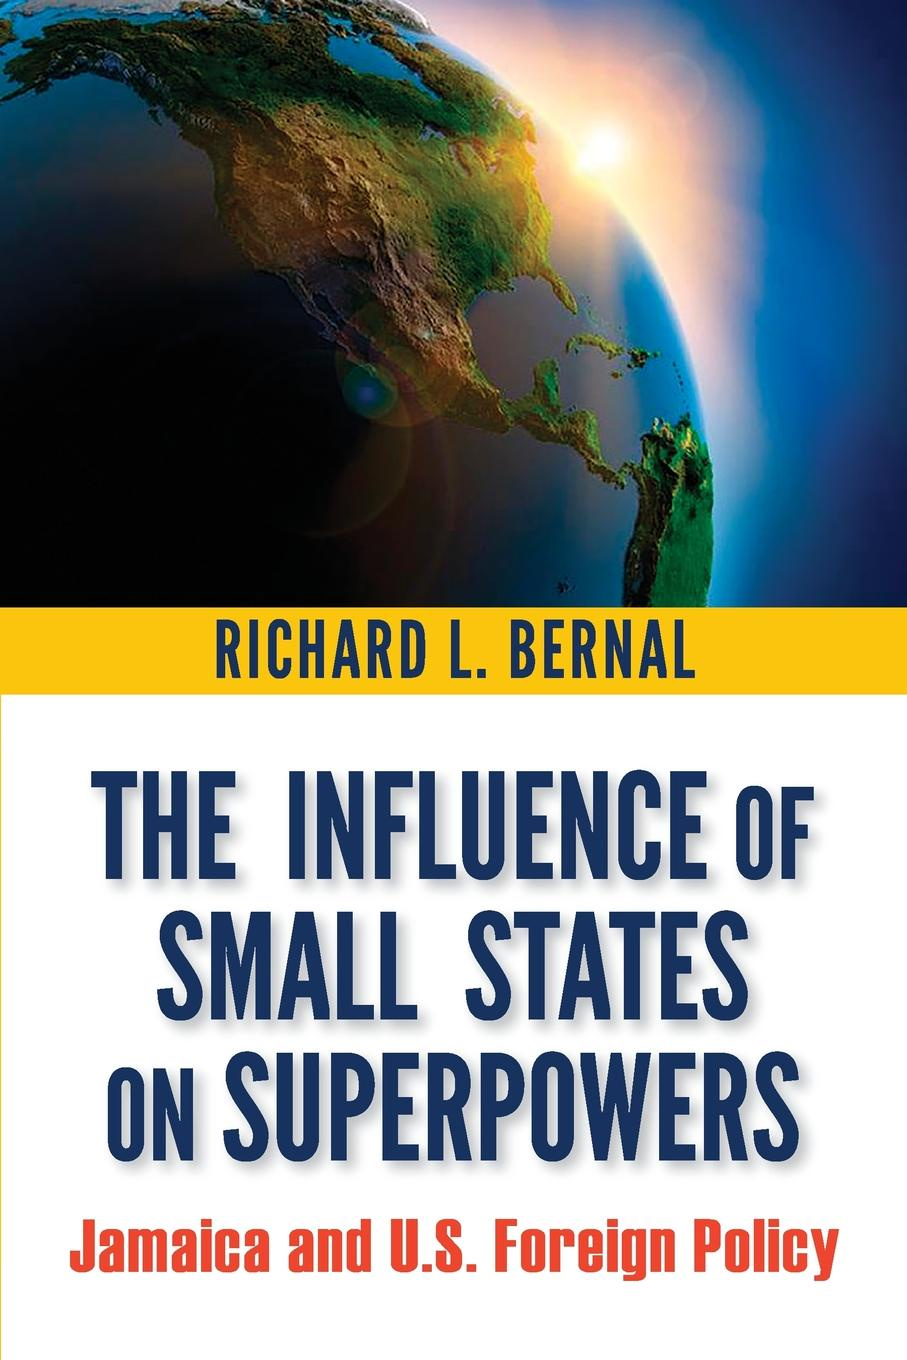 The Influence of Small States on Superpowers. Jamaica and U.S. Foreign Policy. Richard L. Bernal